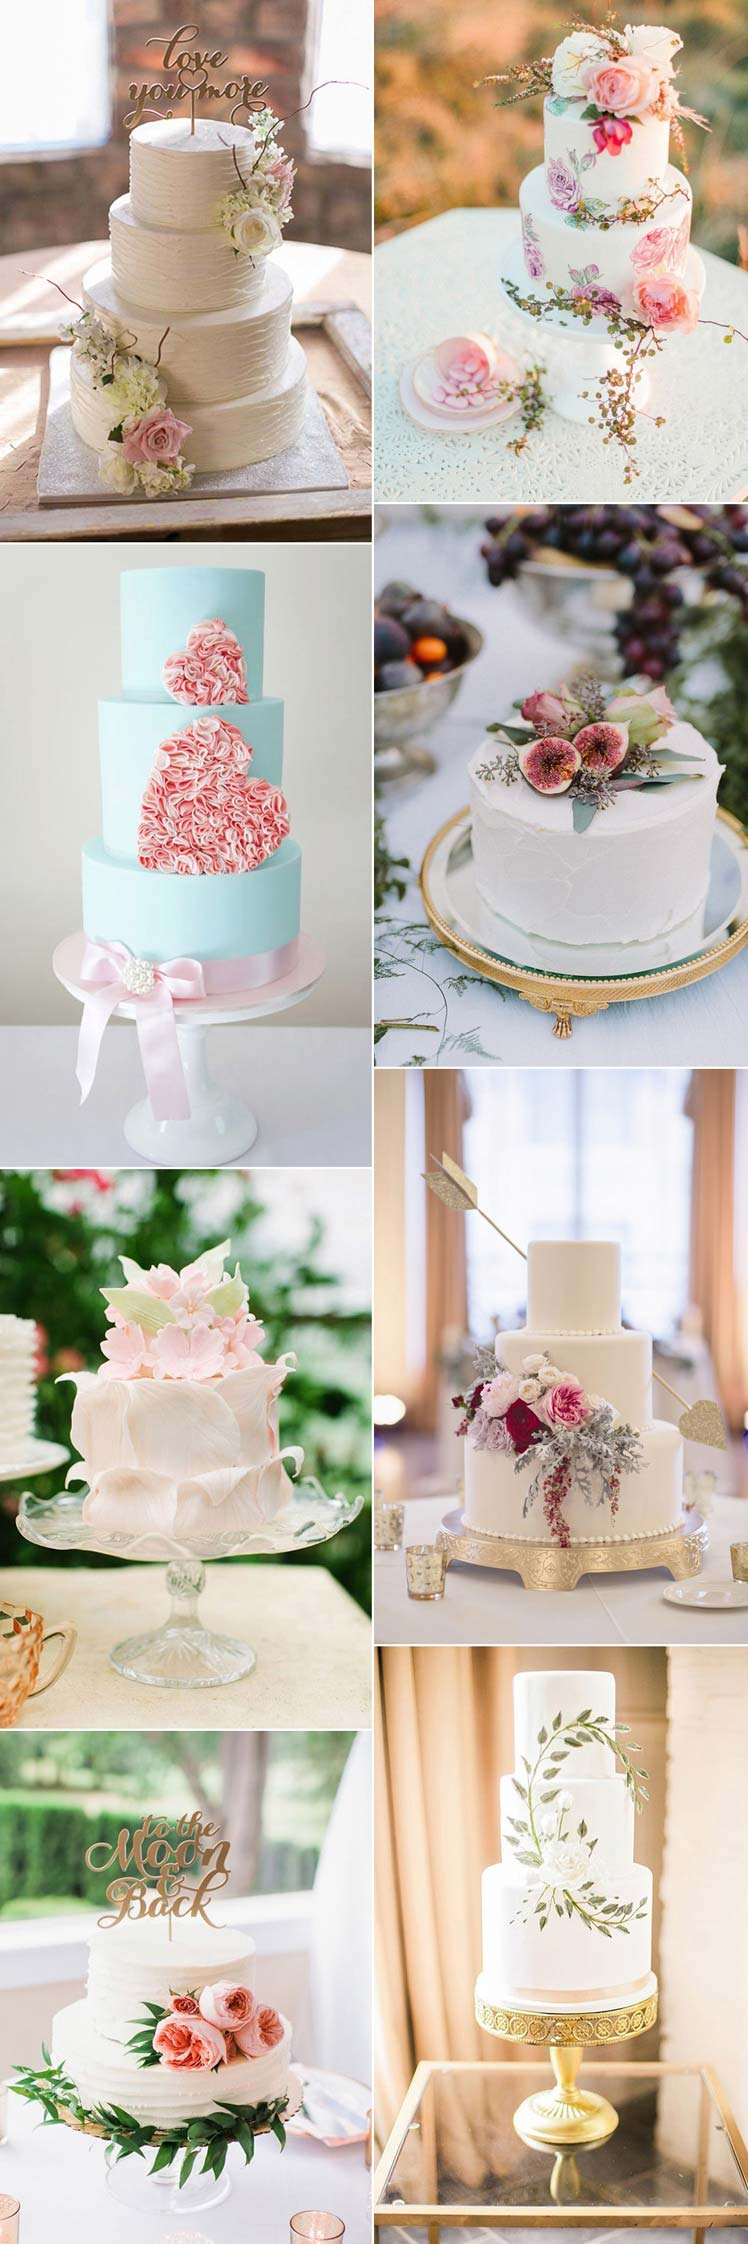 wedding cakes for a valentine wedding